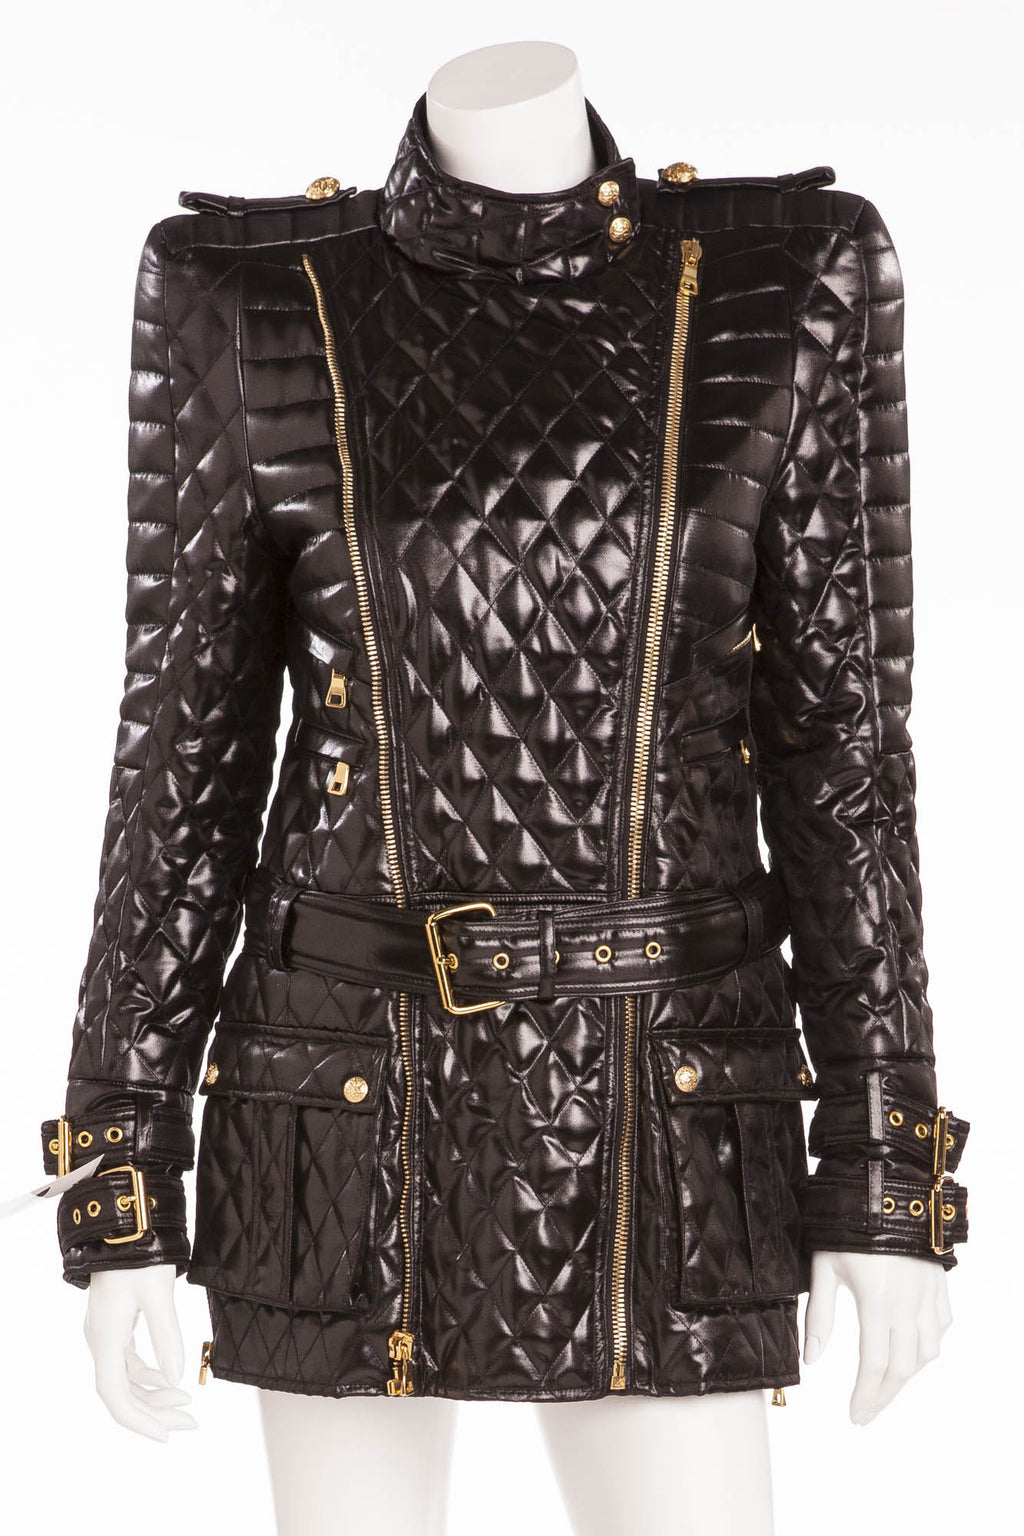 Balmain - Label's Signature Silhouette Jacket with Strong Padded Shoulder  - FR 40